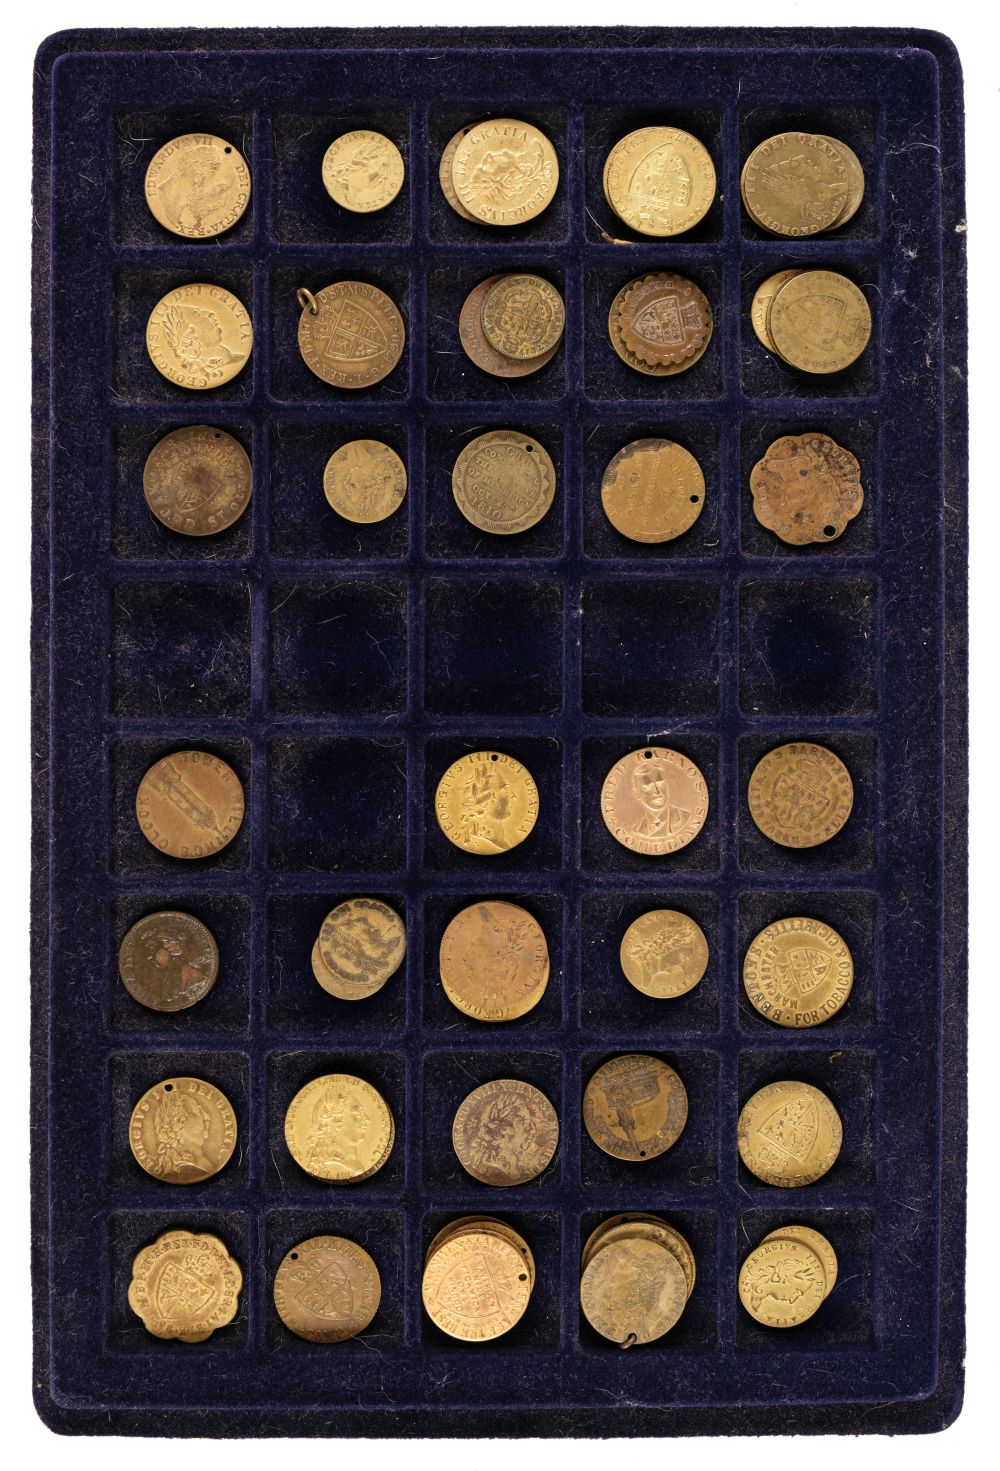 * Tokens. Imitation Spade Guineas. George III and later